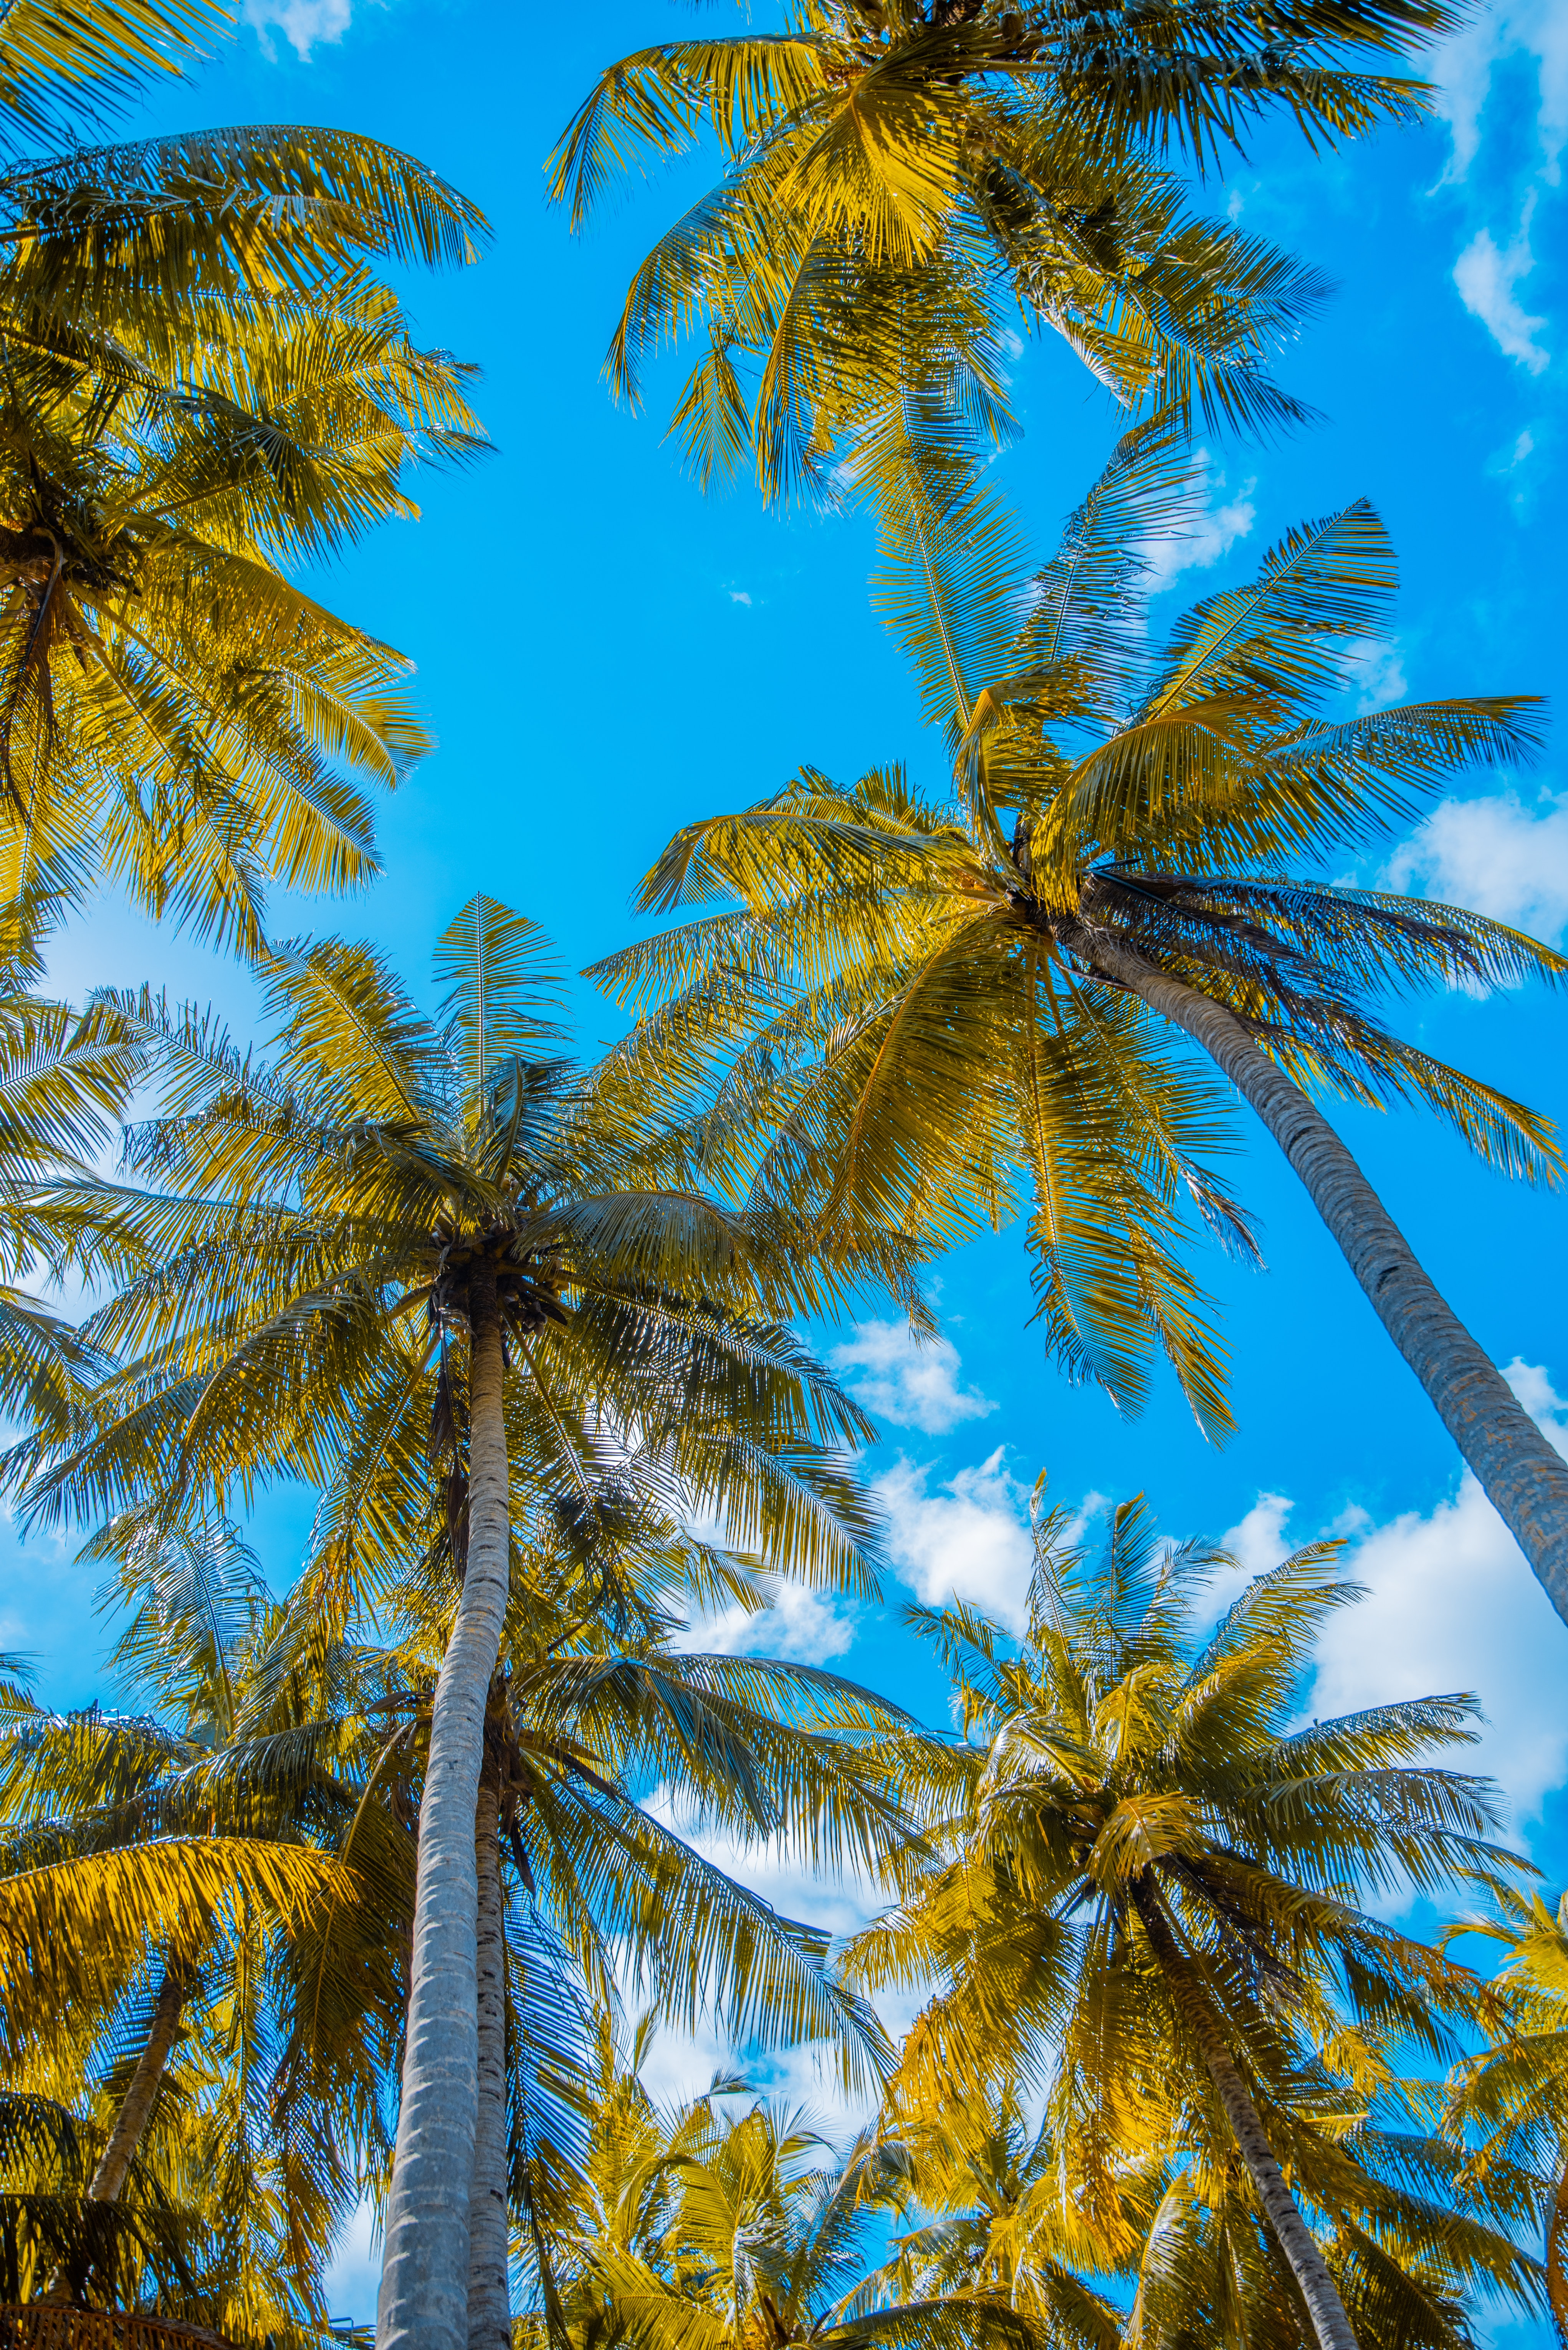 55934 download wallpaper Nature, Sky, Clouds, Tropics, Summer, Palms screensavers and pictures for free